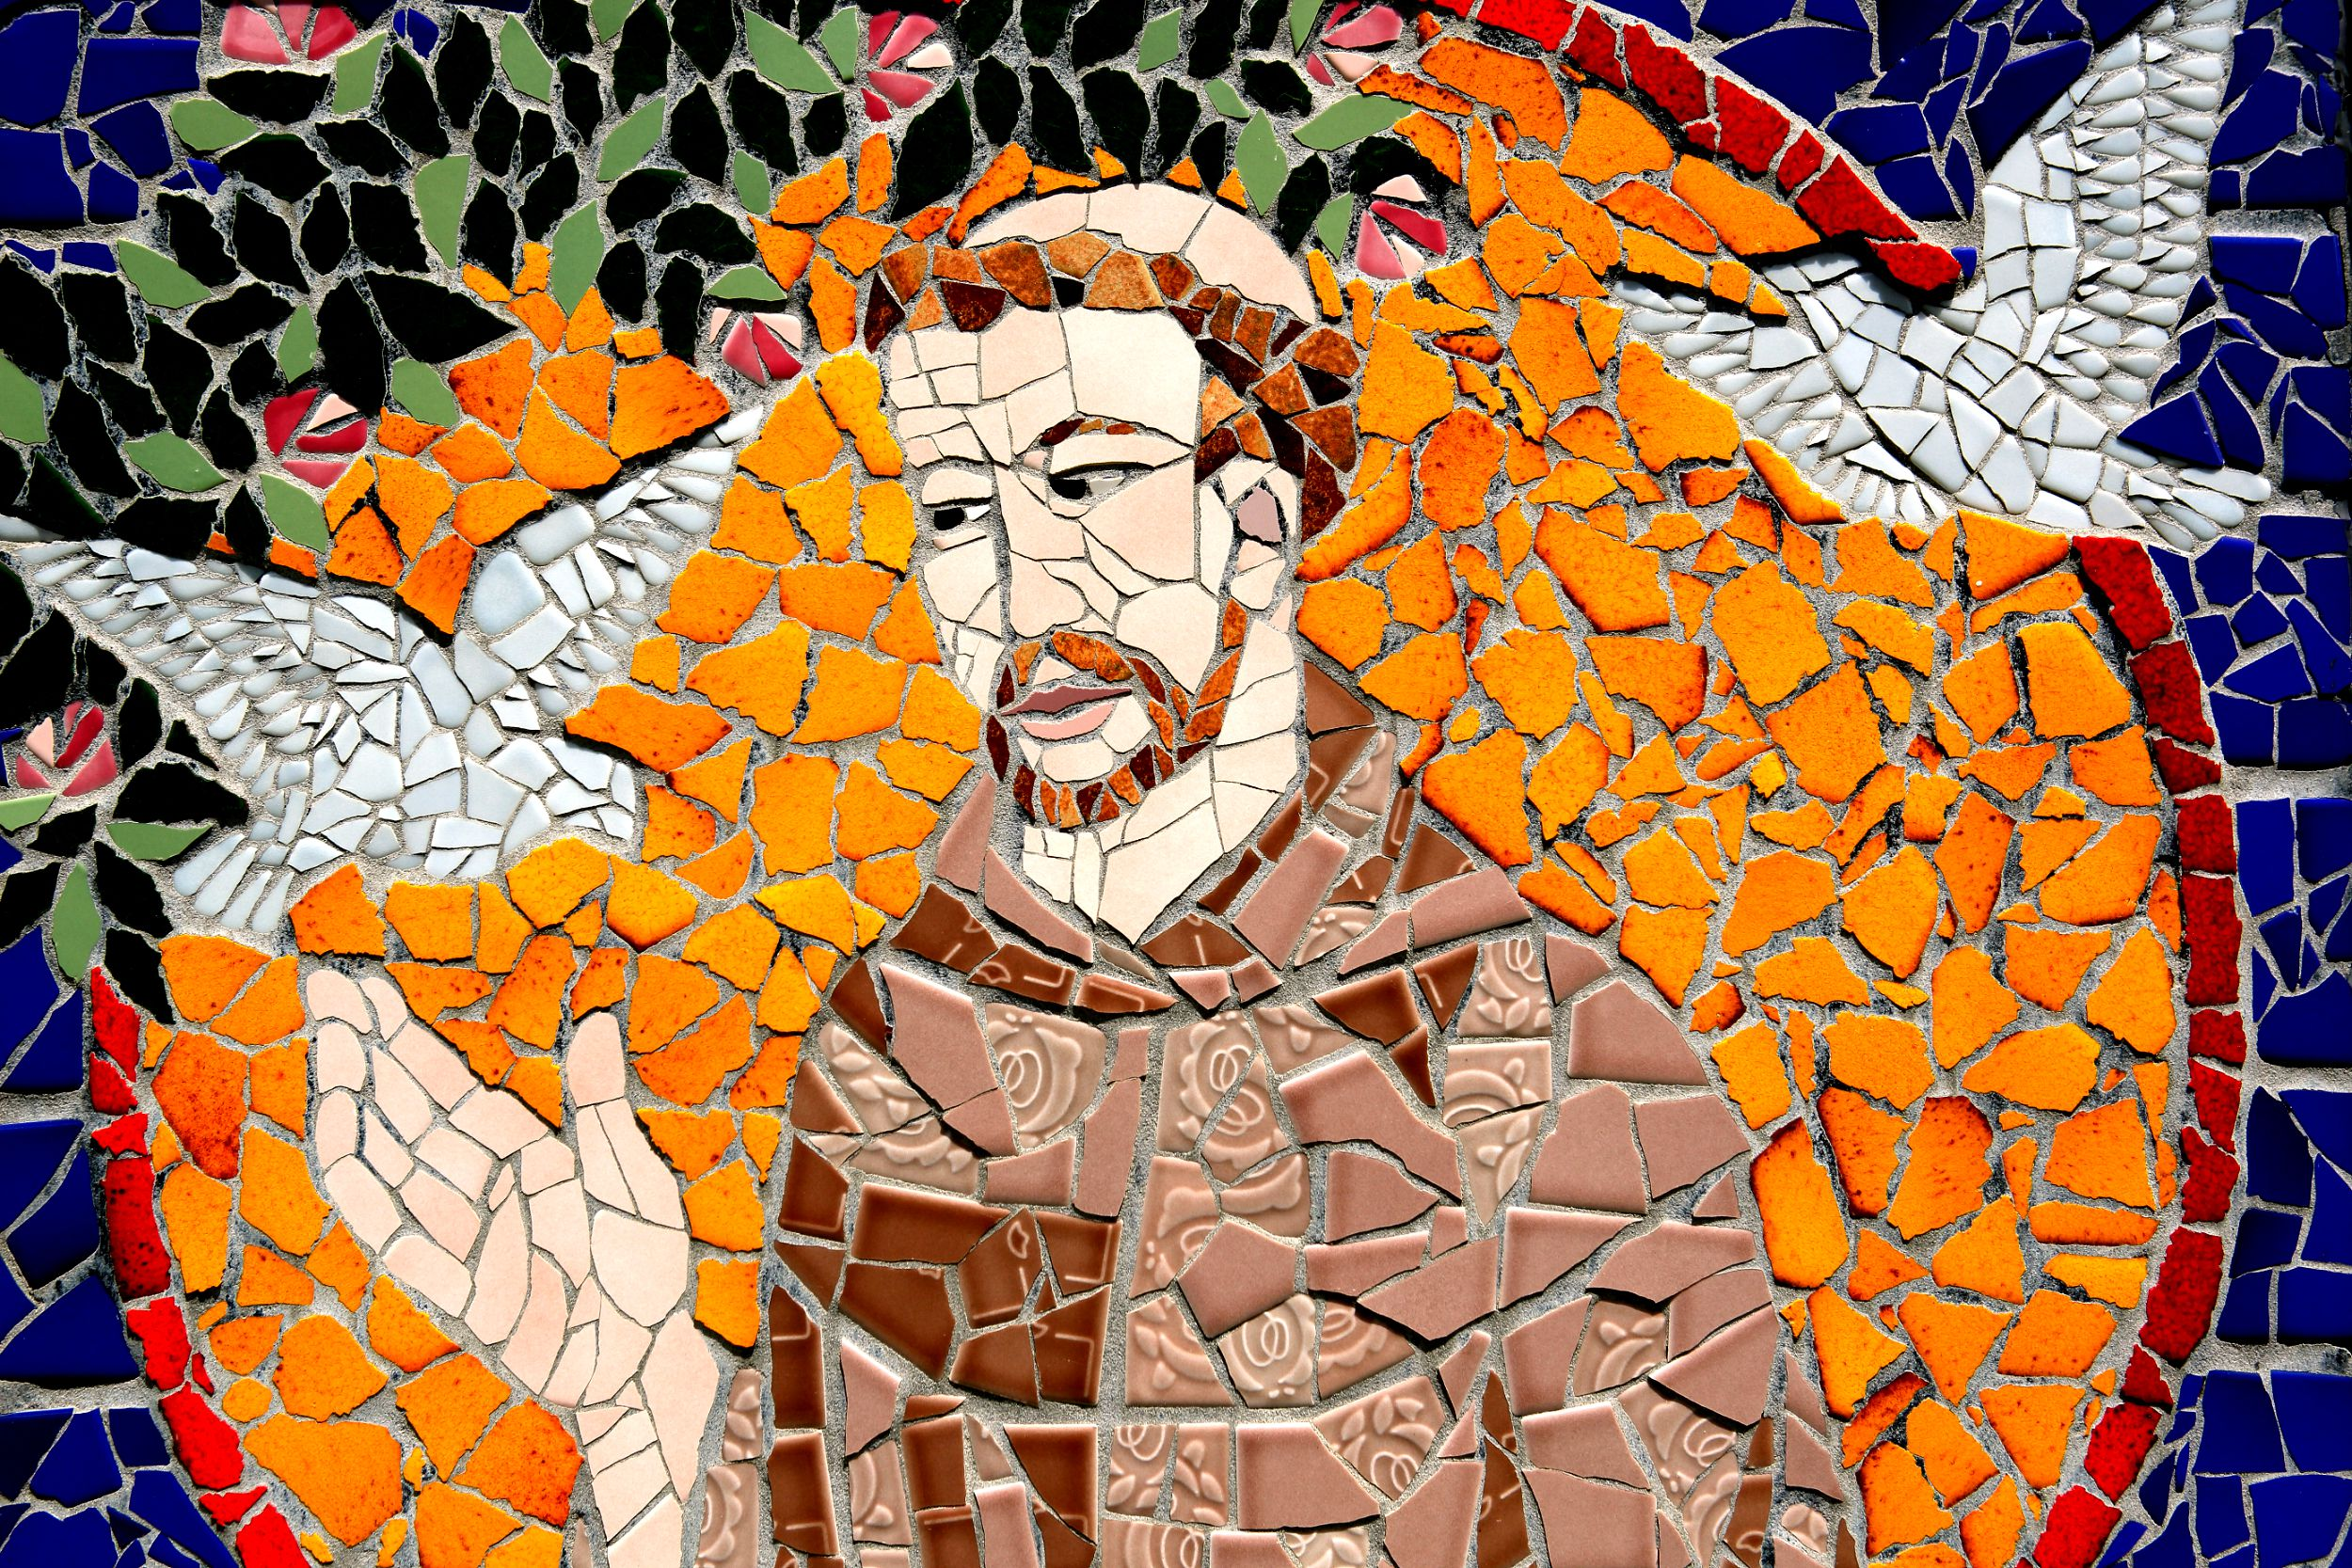 Mural of St. Francis